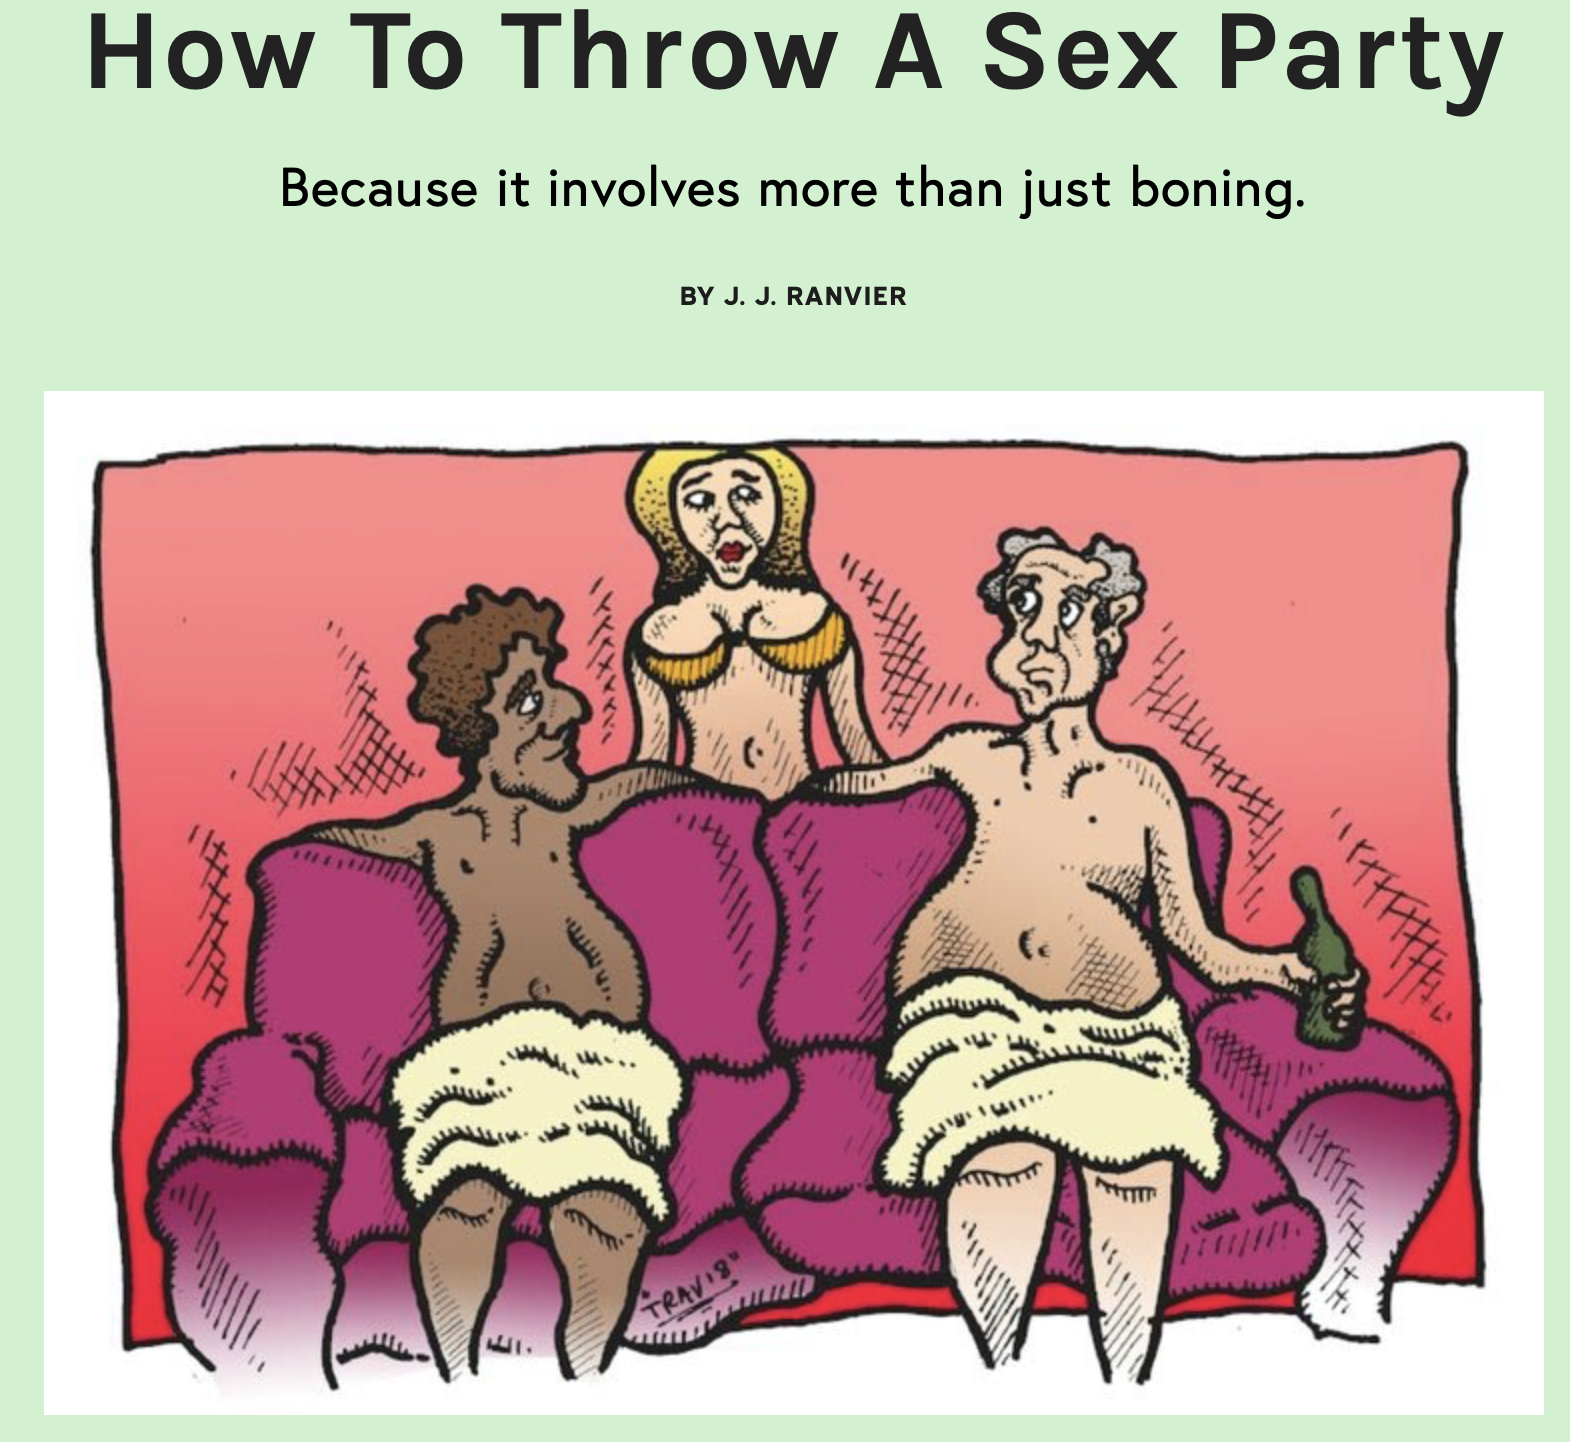 How to Throw A Sex Party